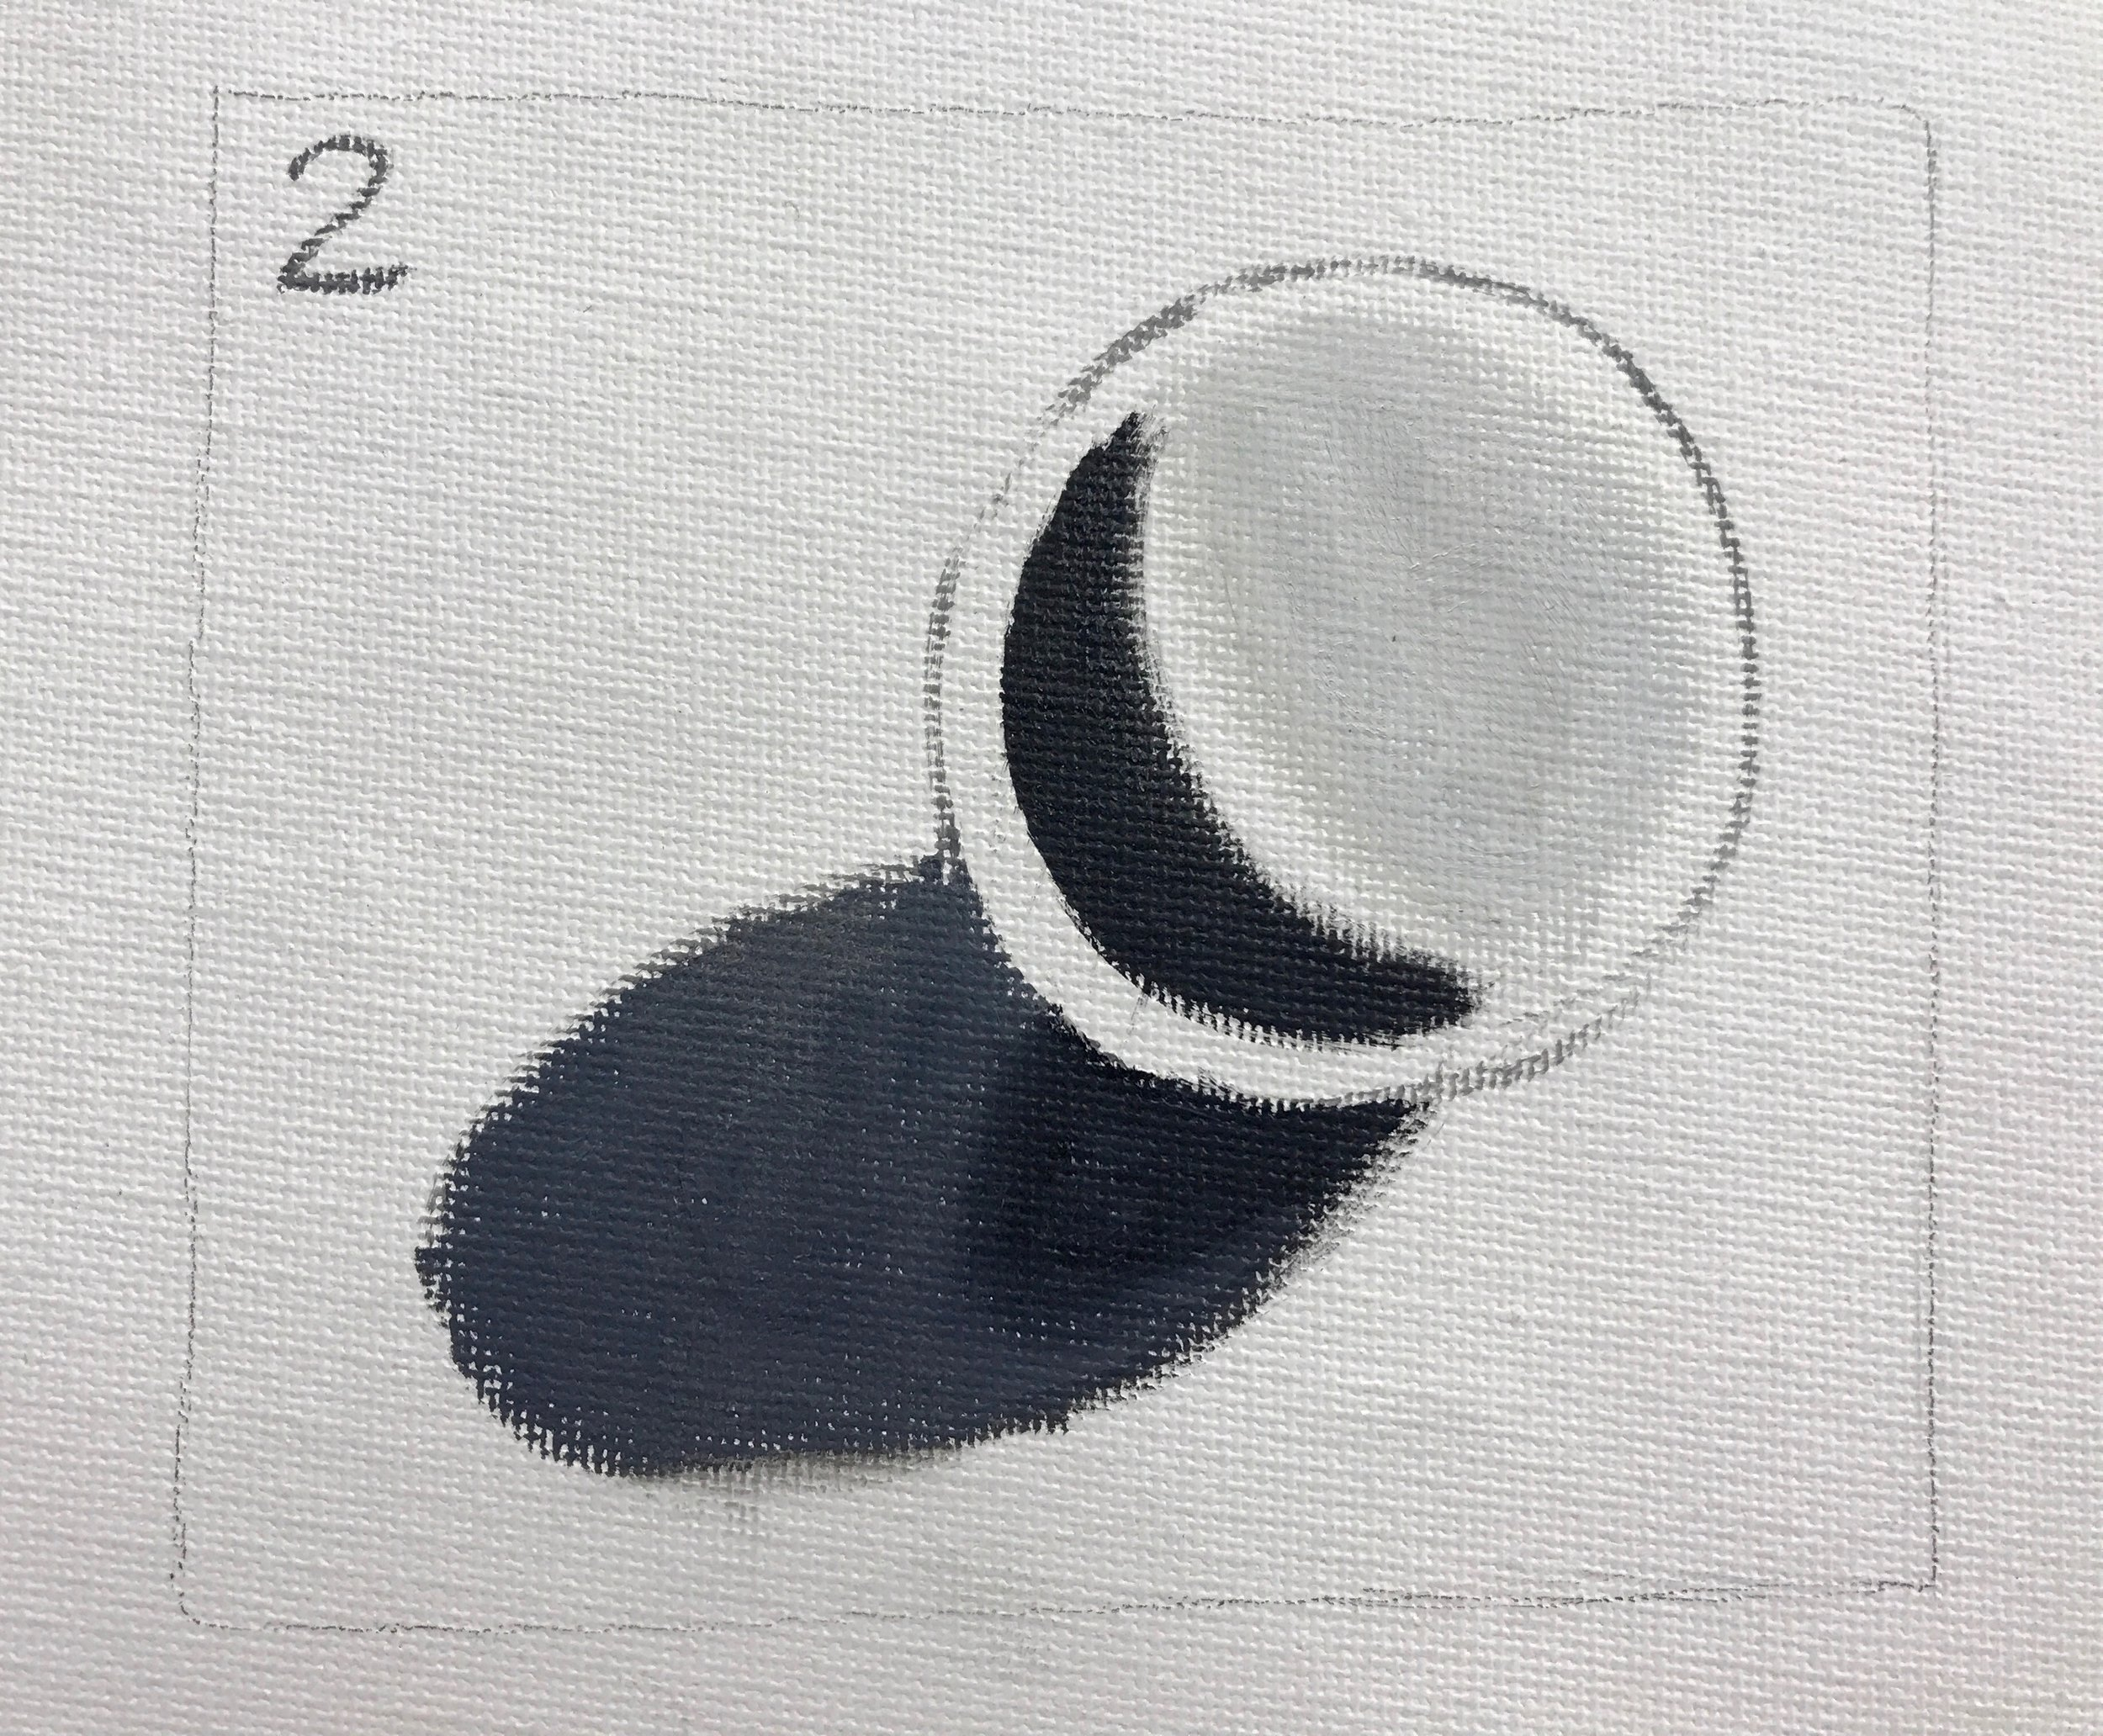 Paint light and shadow on sphere and two values in cast shadow.